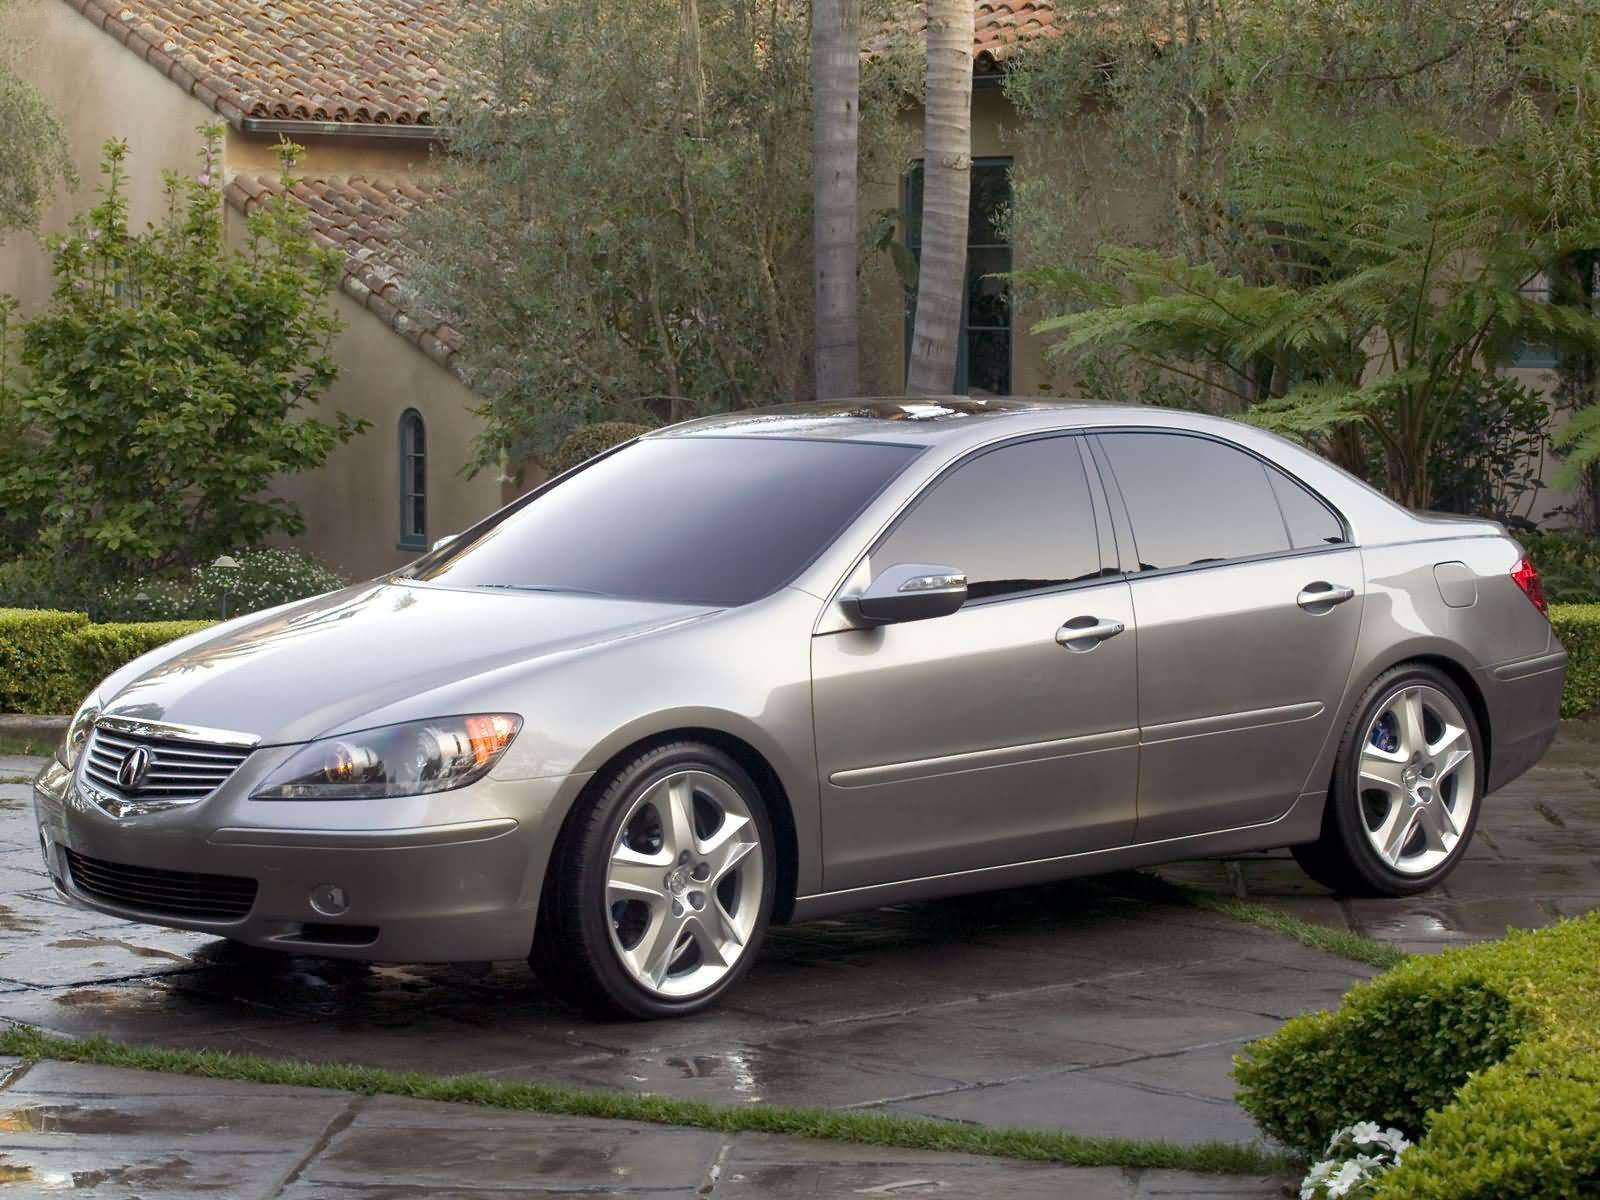 Online Auto Insurance >> Japanese car photos 2004 ACURA RL Prototype